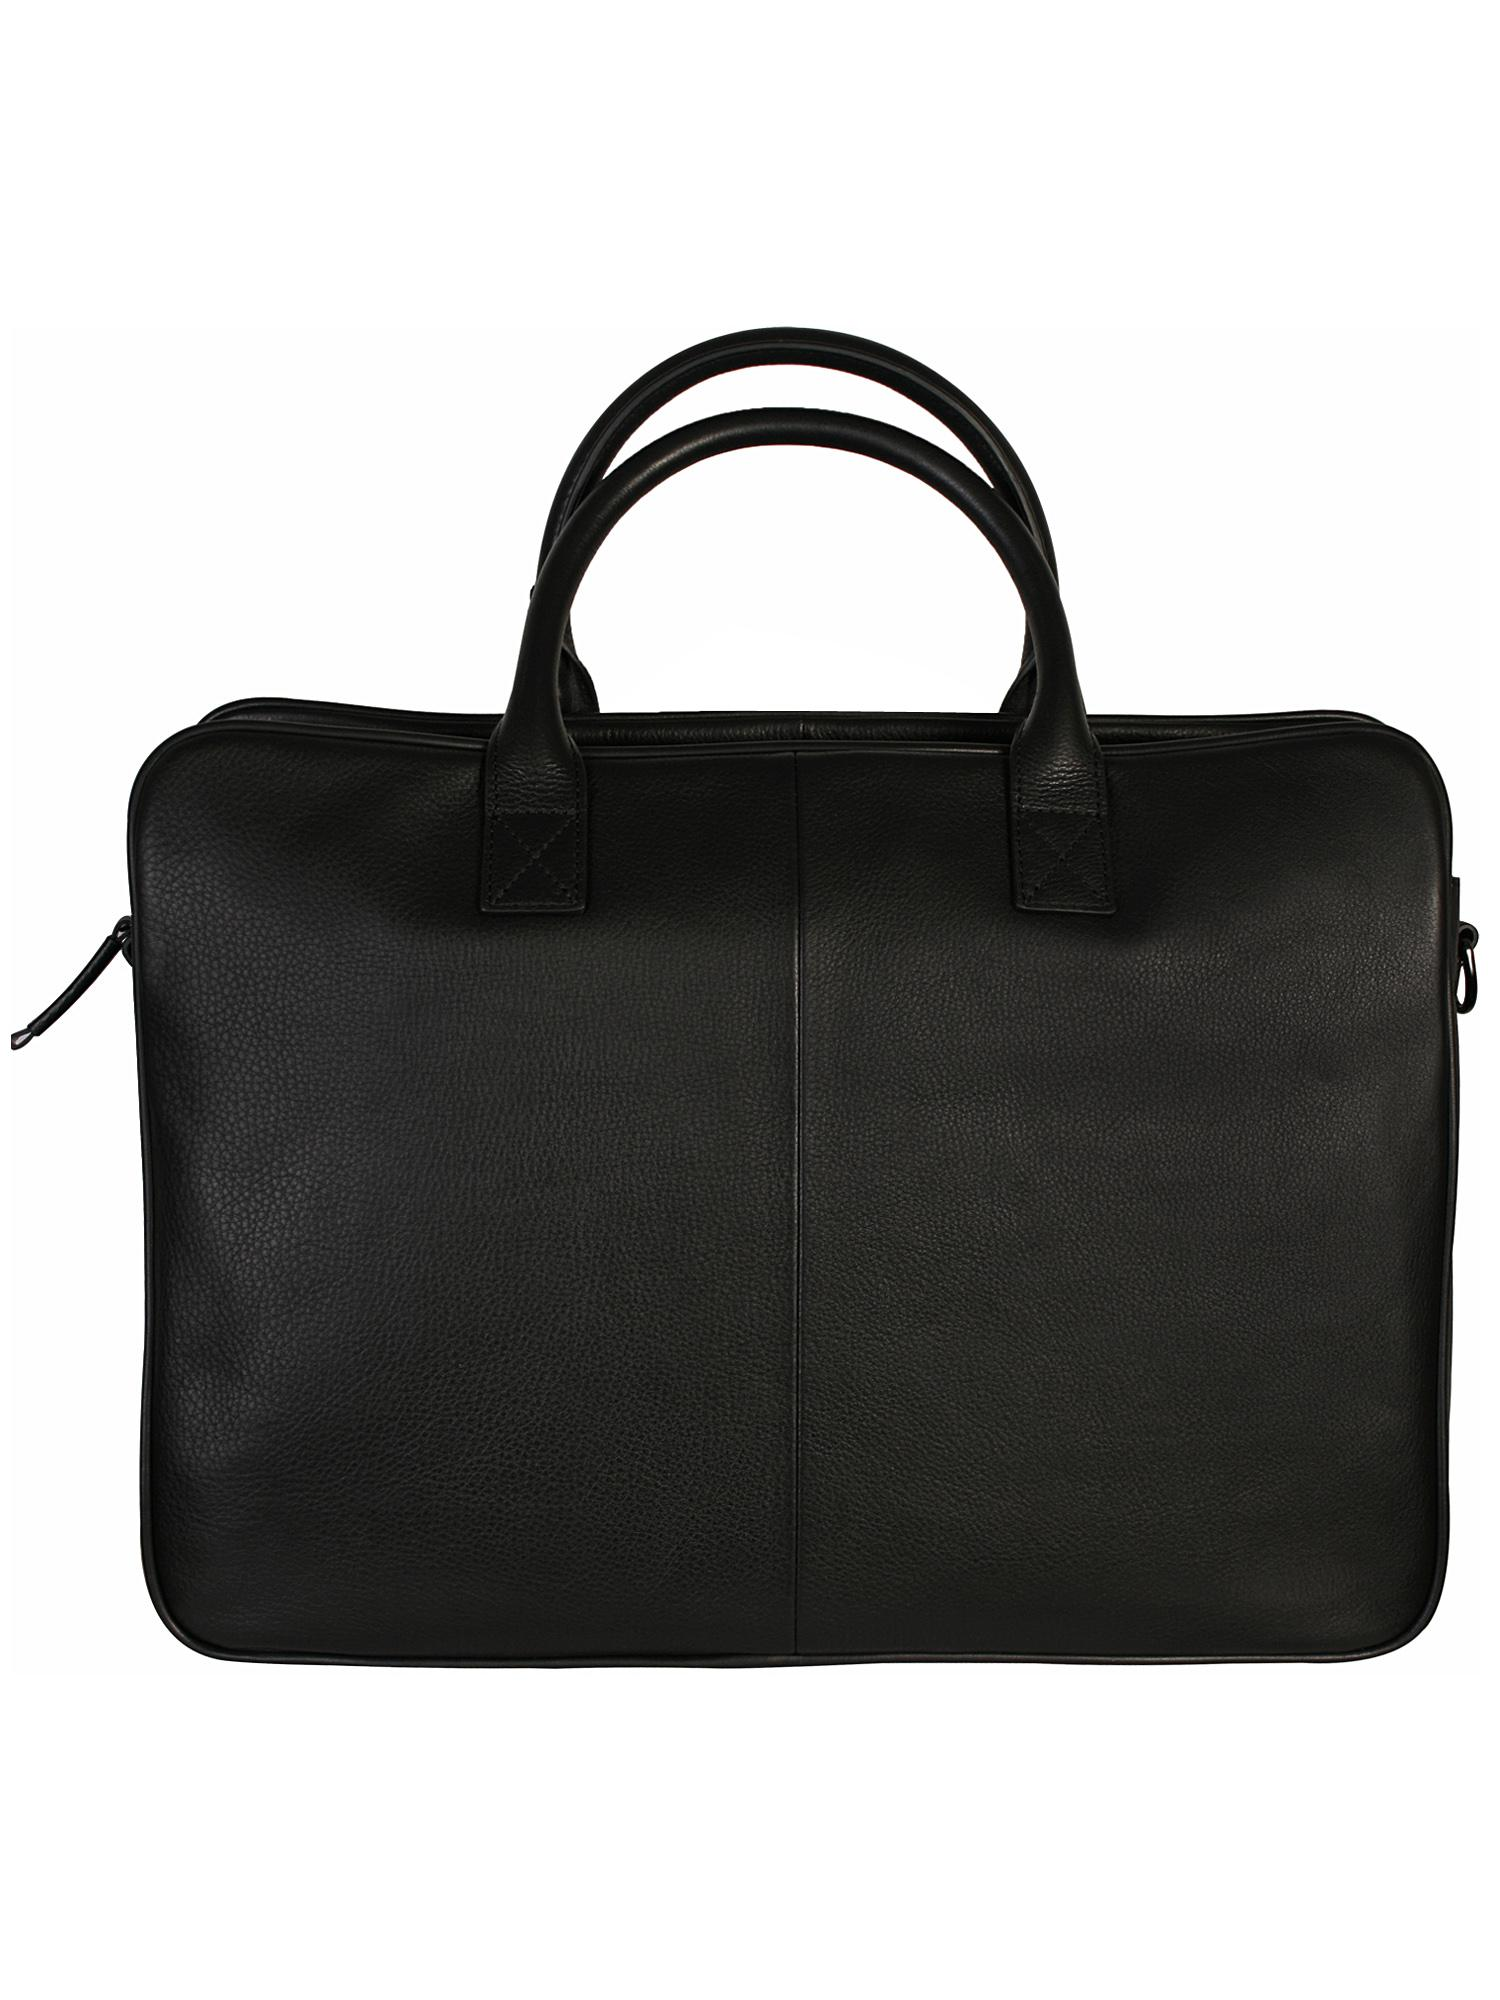 9d9b249e2bc Lyst - Armani Jeans Black Leather Briefcase Bag in Black for Men